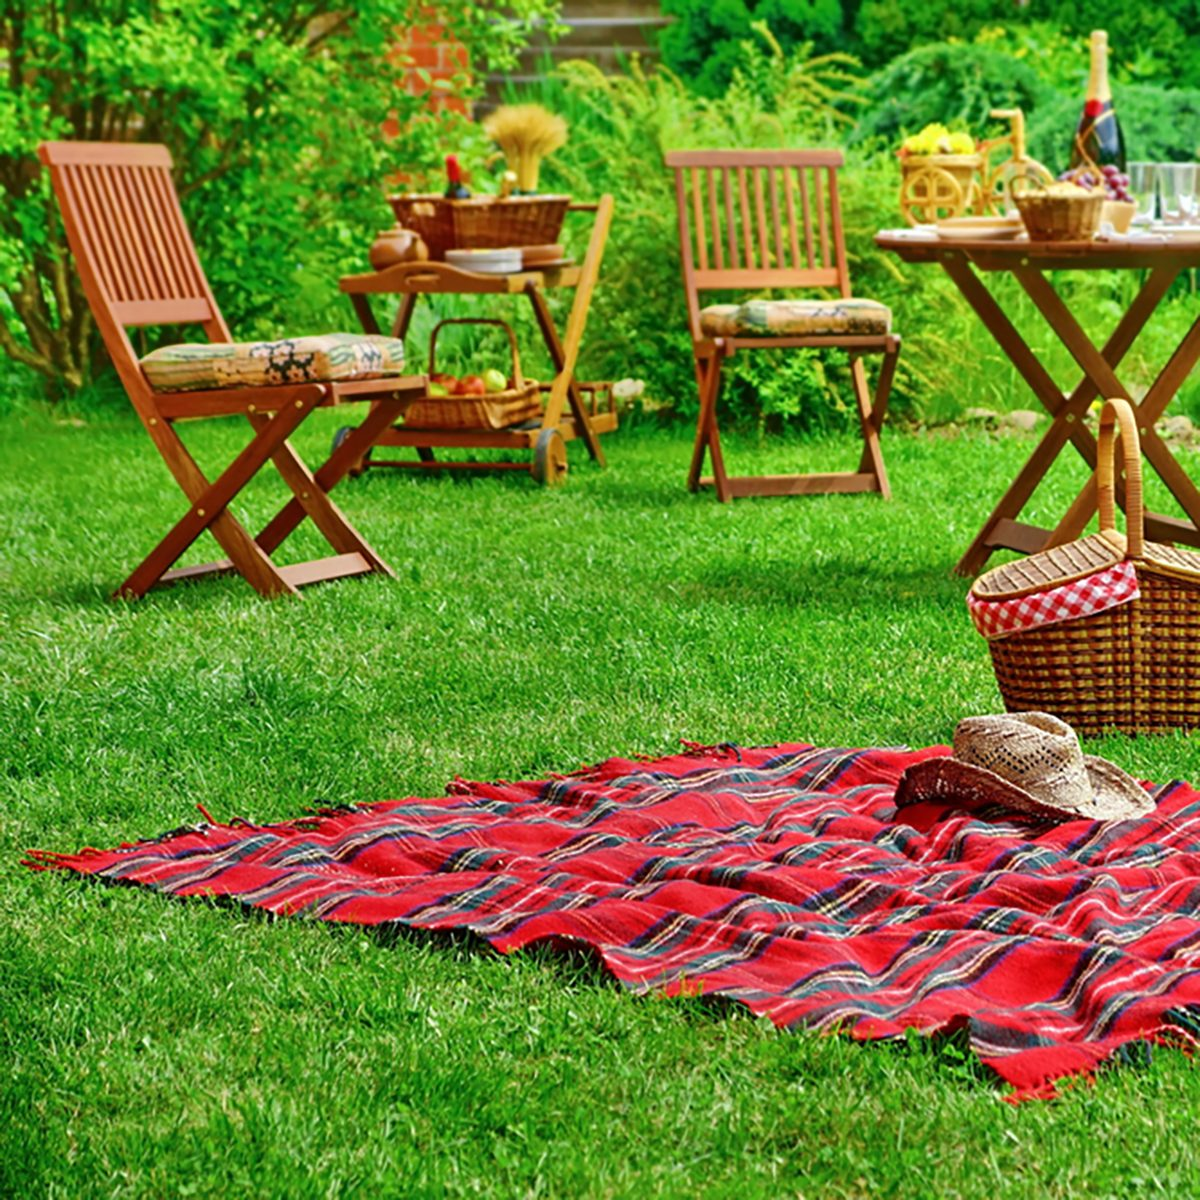 Closeup Of Red Picnic Blanket With Cowboy Straw Hat And Basket Or Hamper